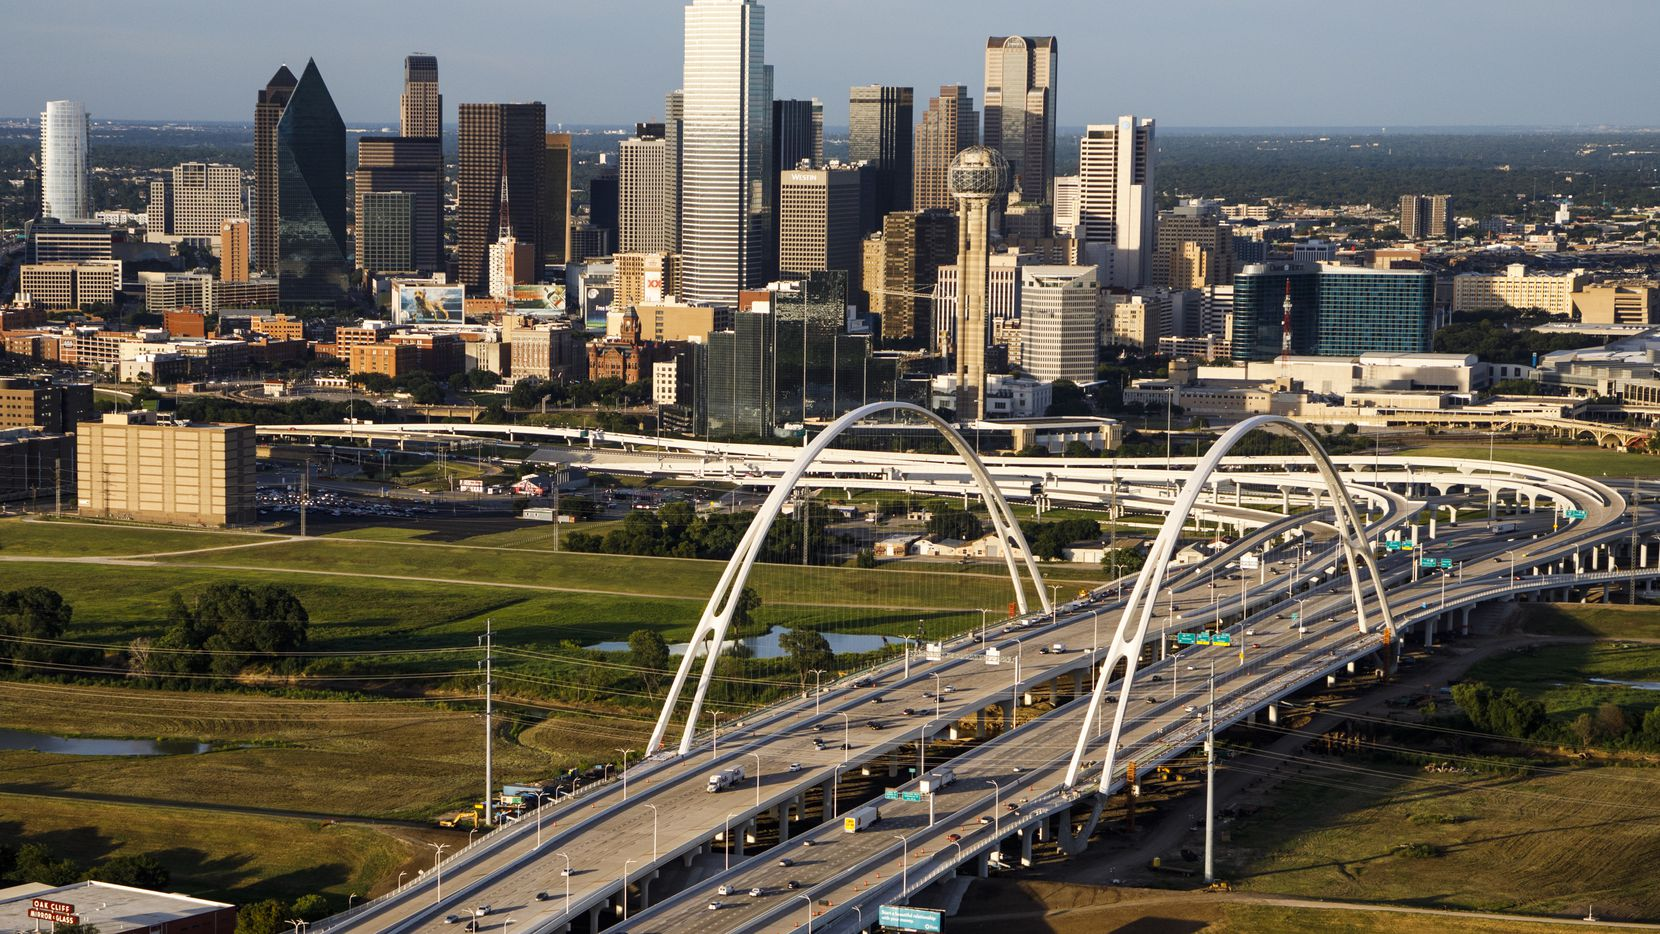 The downtown skyline and Margaret McDermott Bridge photographed on Thursday, July 27, 2017, in Dallas. (Smiley N. Pool/The Dallas Morning News)